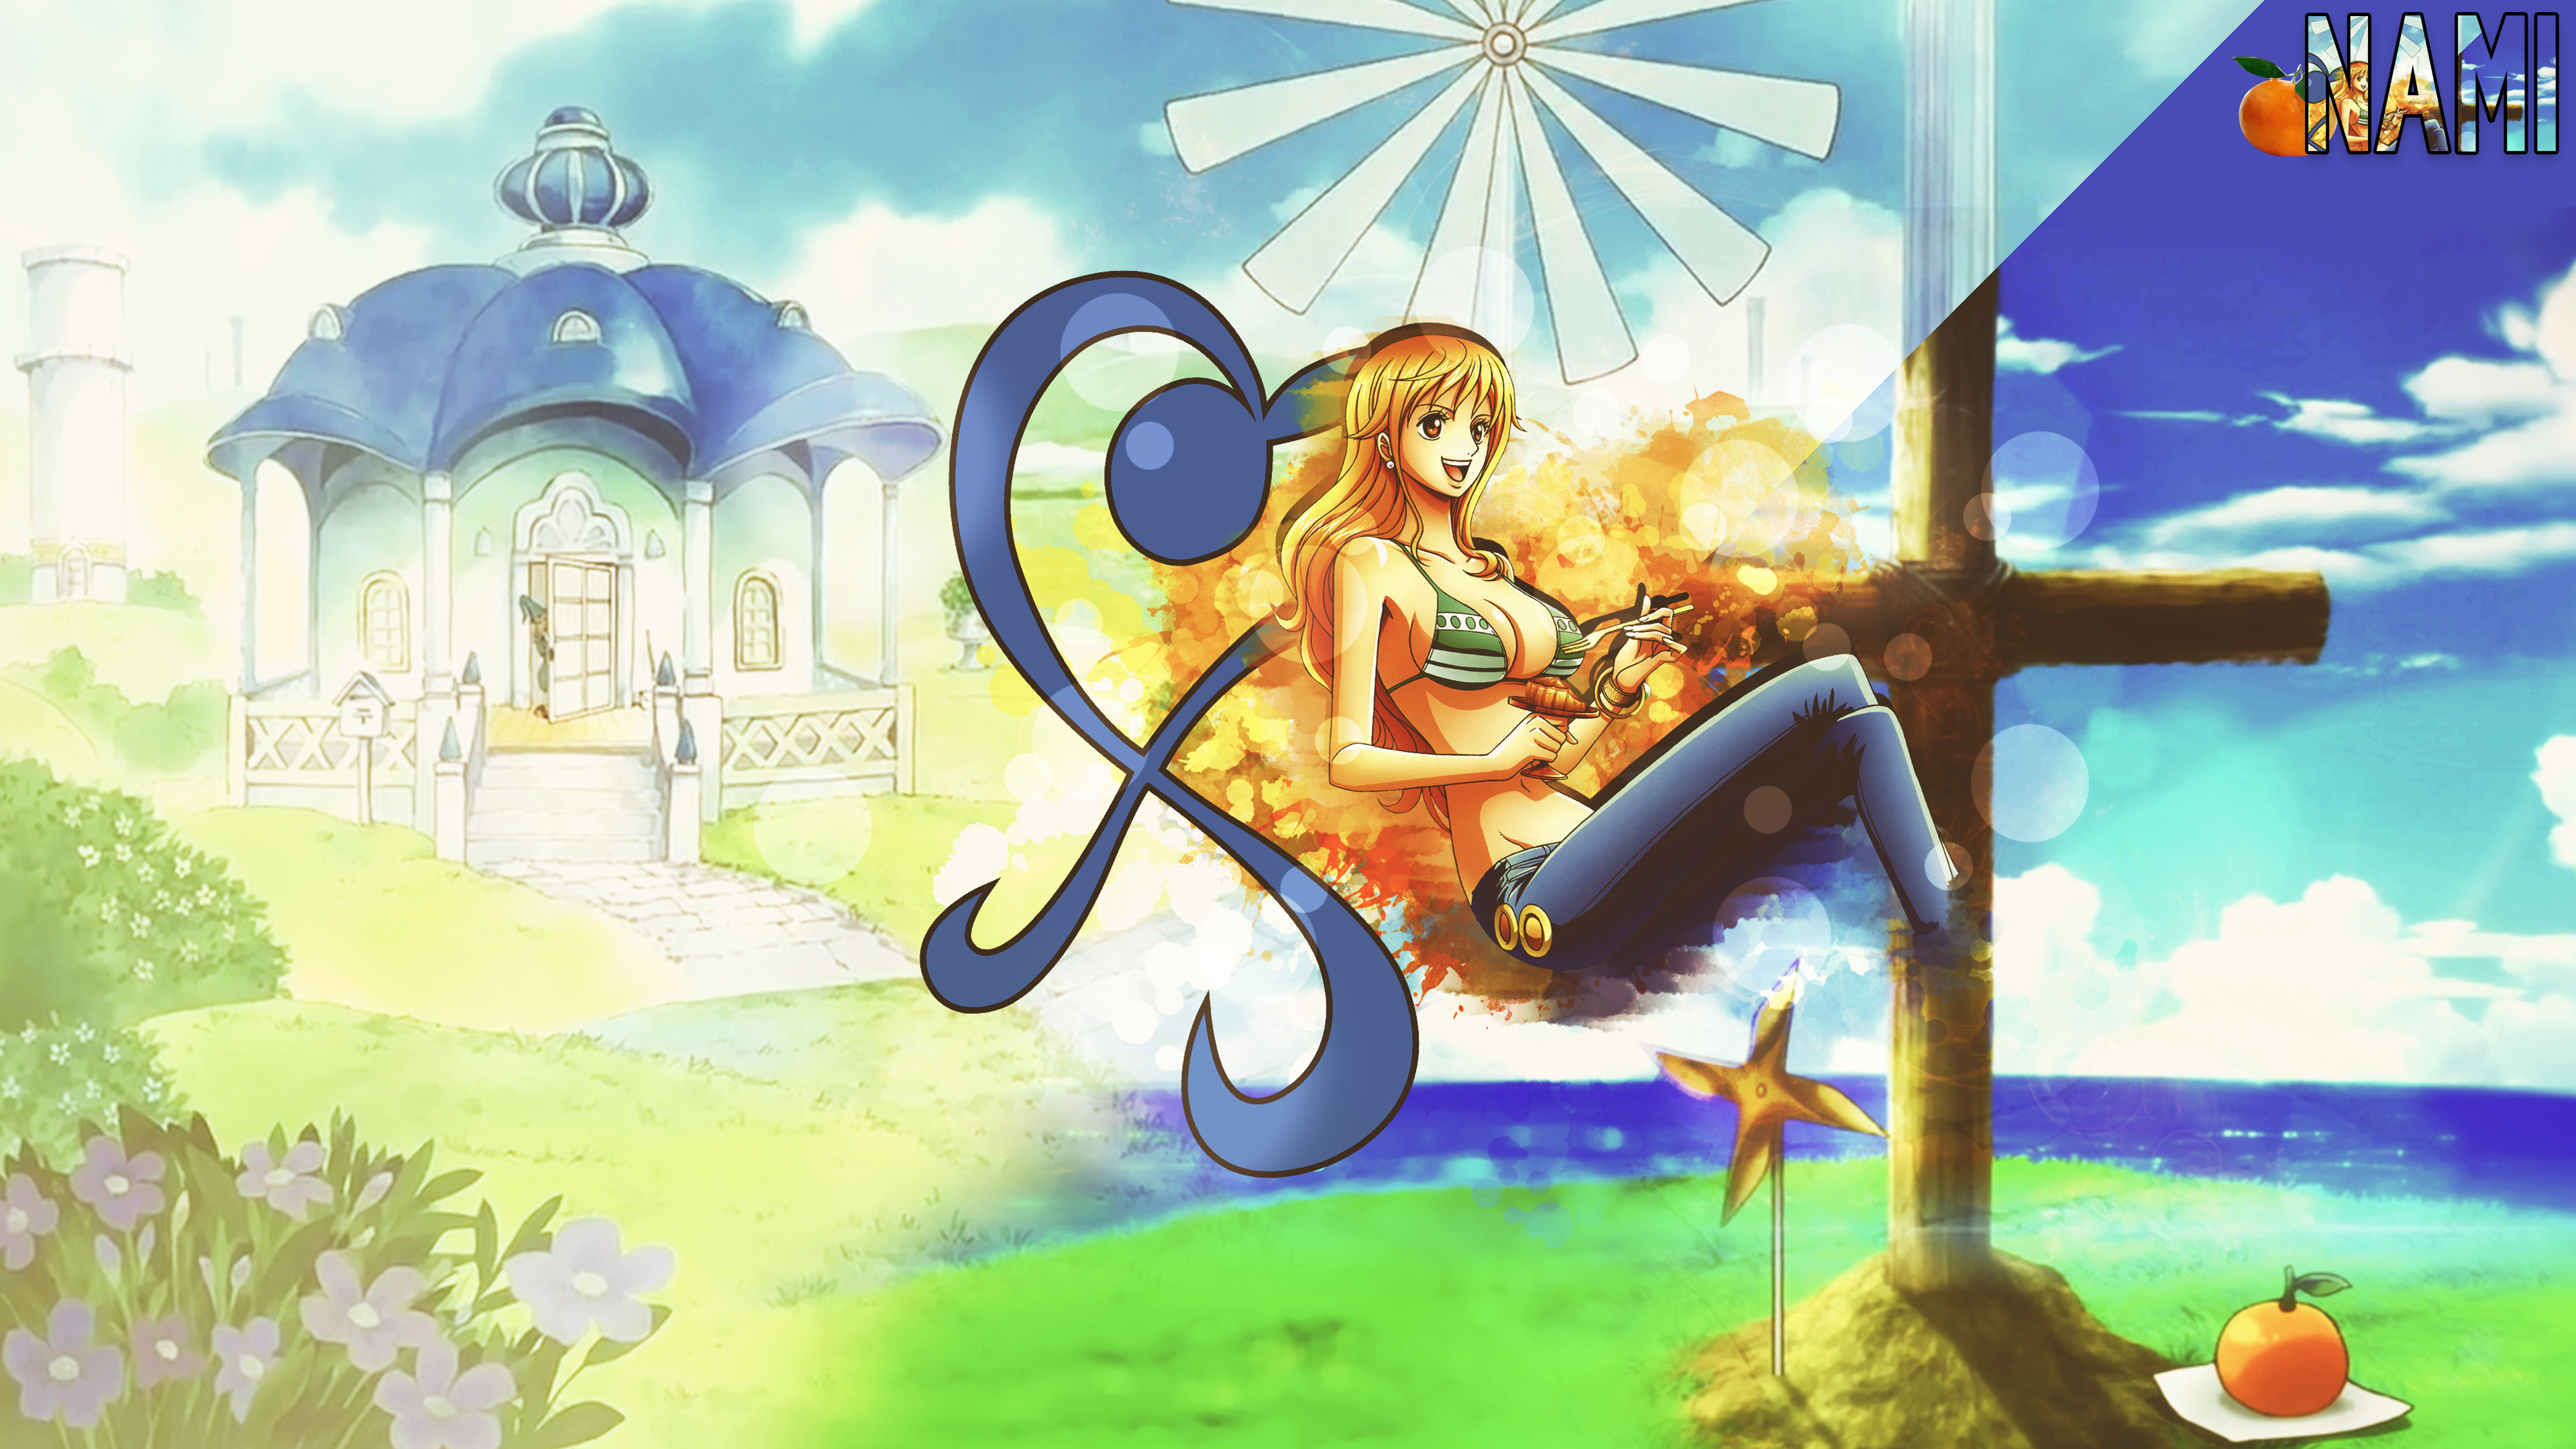 One Piece Backgrounds, Pictures, Images